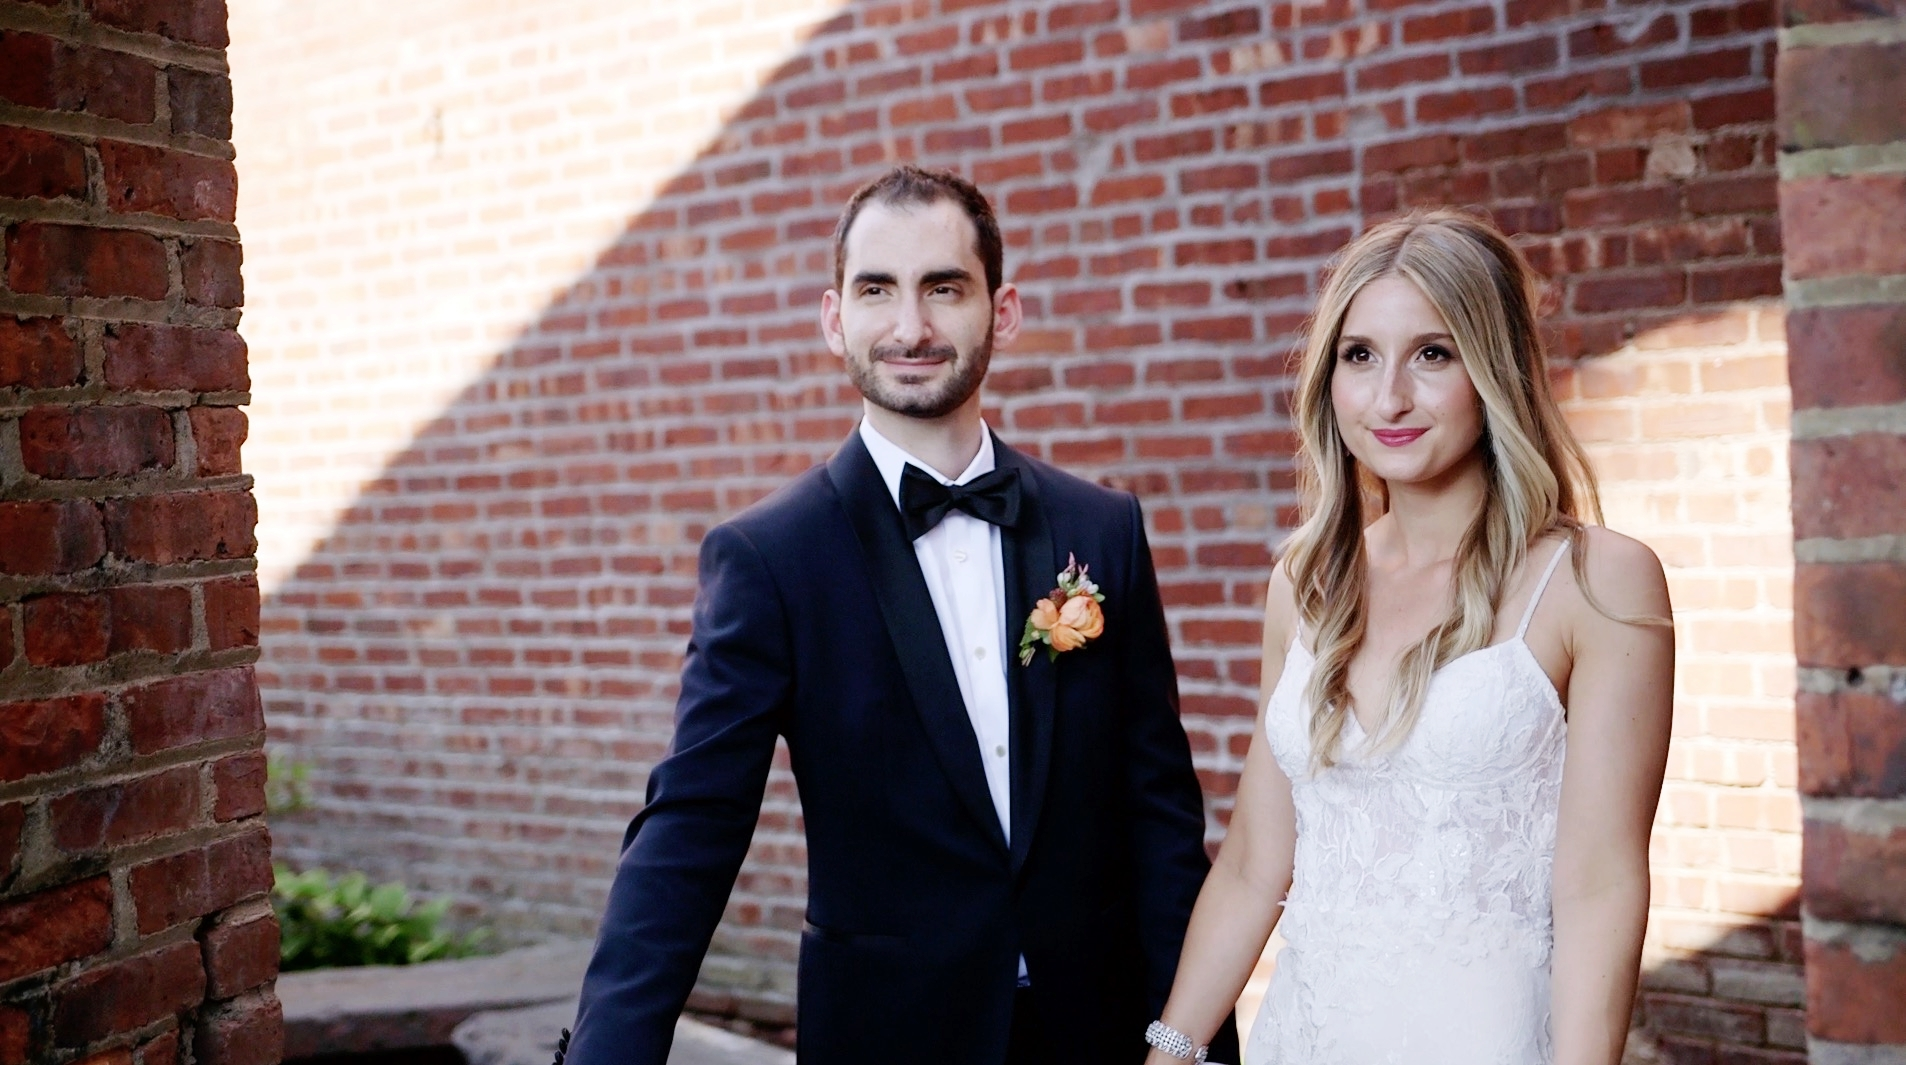 Simone + Ryne | Brooklyn, New York | The Brooklyn Winery